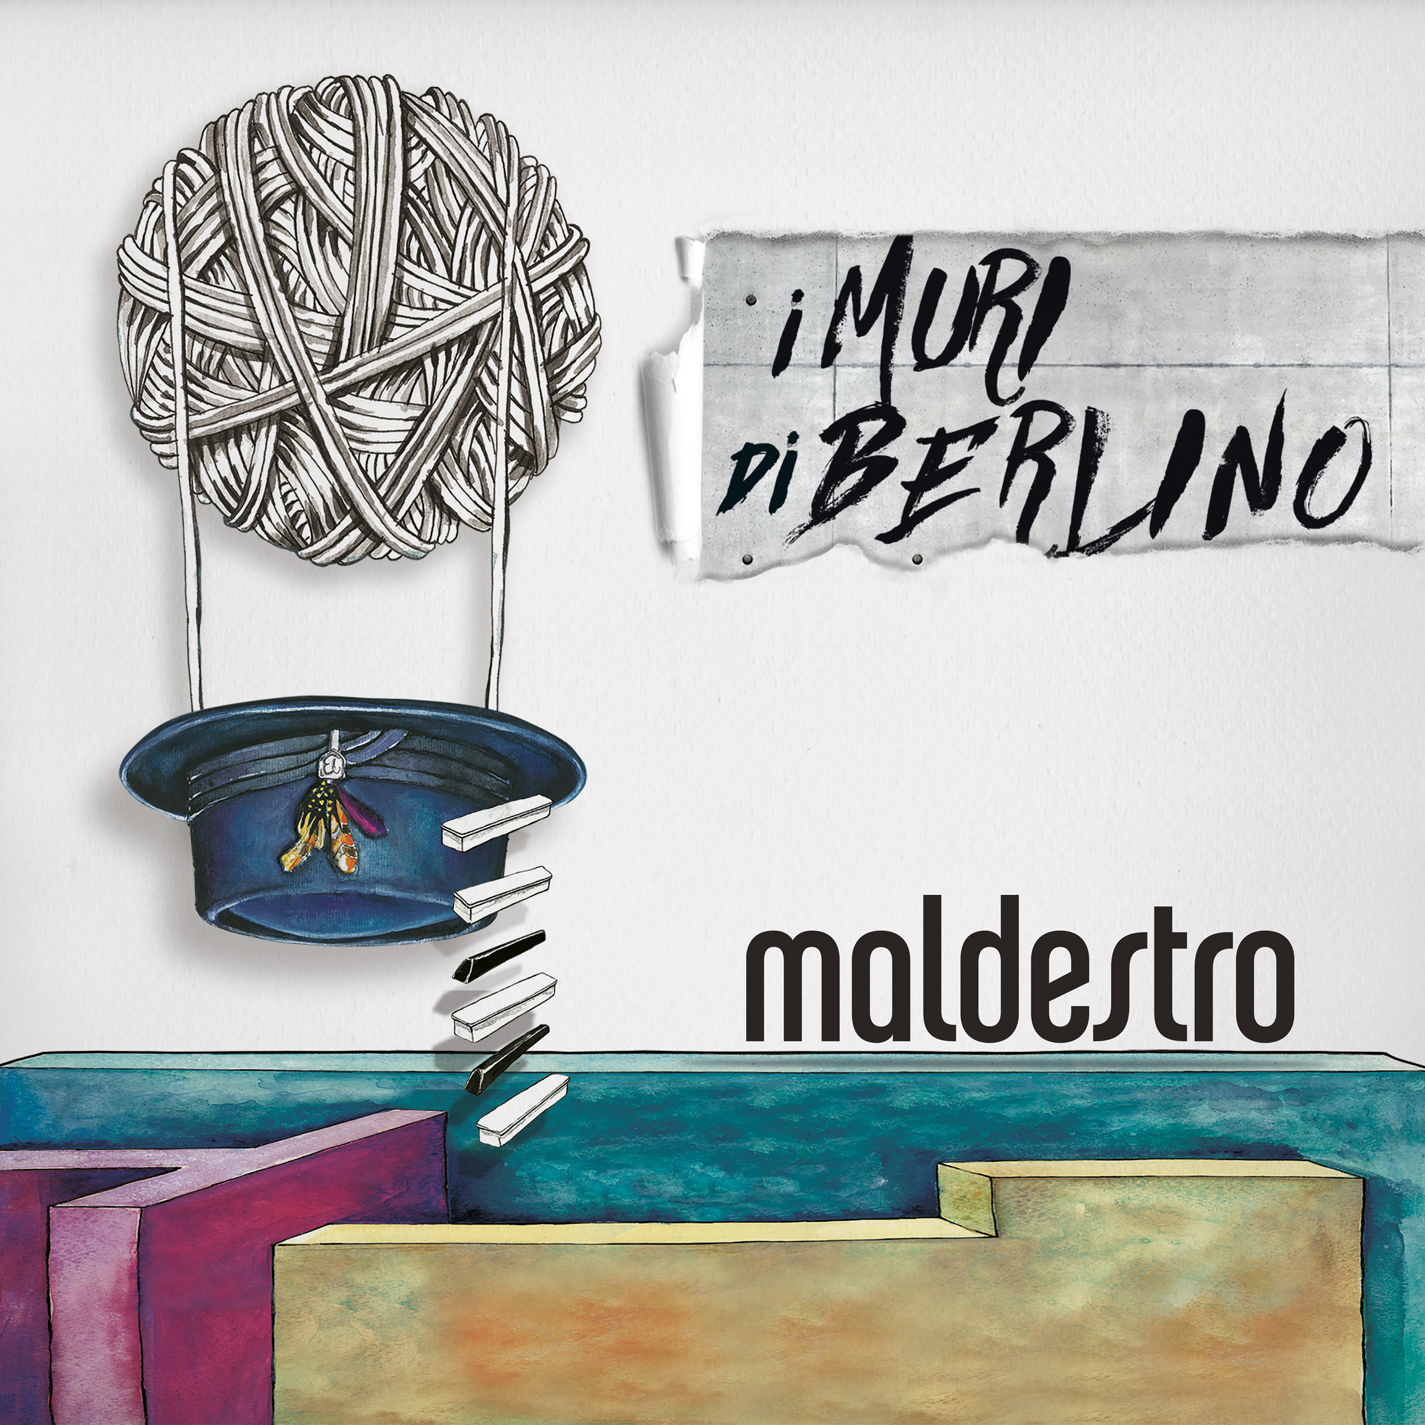 I Muri di Berlino - album cover